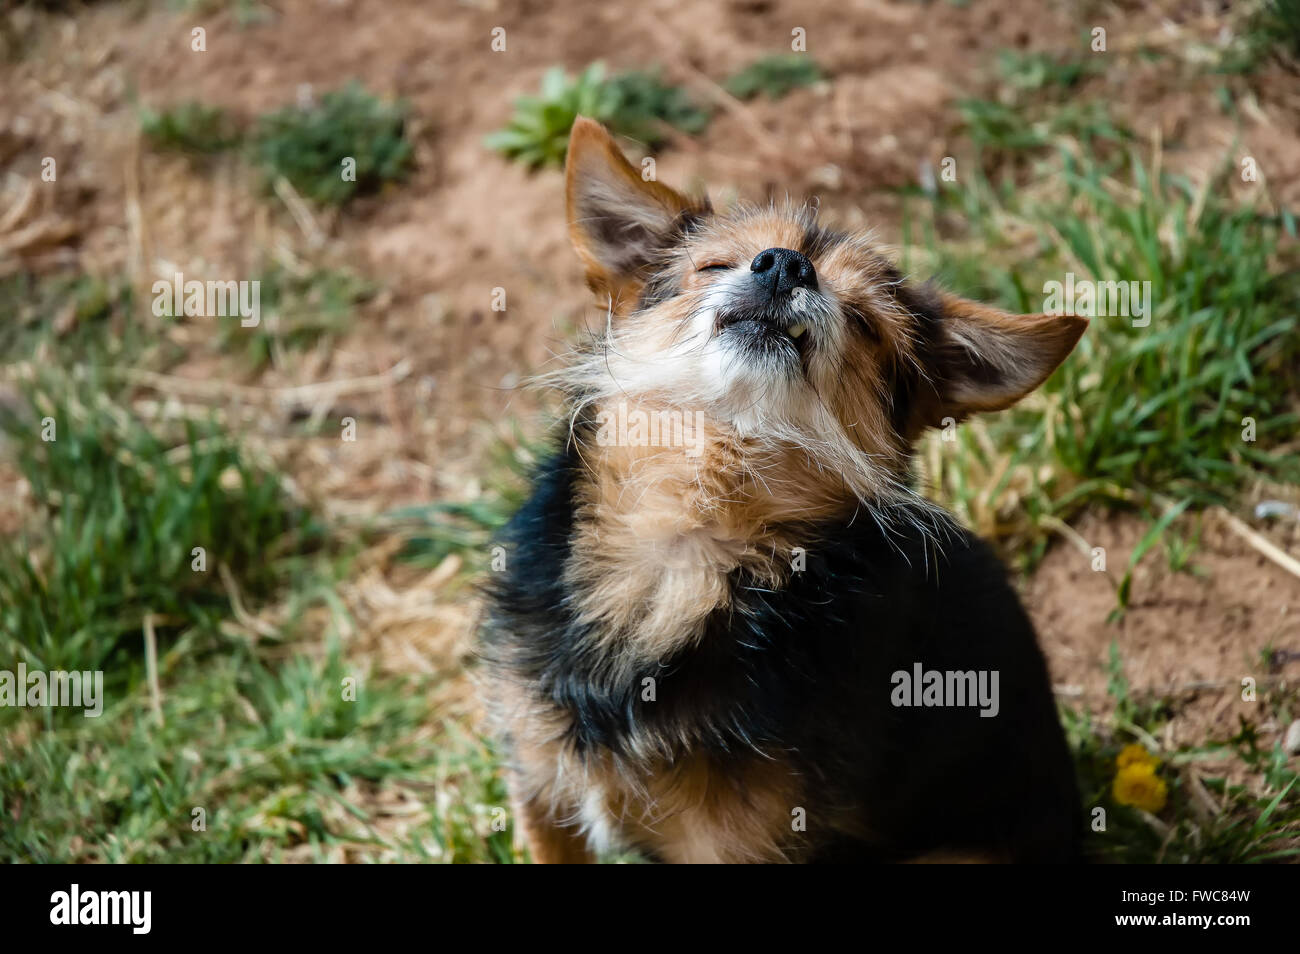 Dog Taking In The Sun - Stock Image